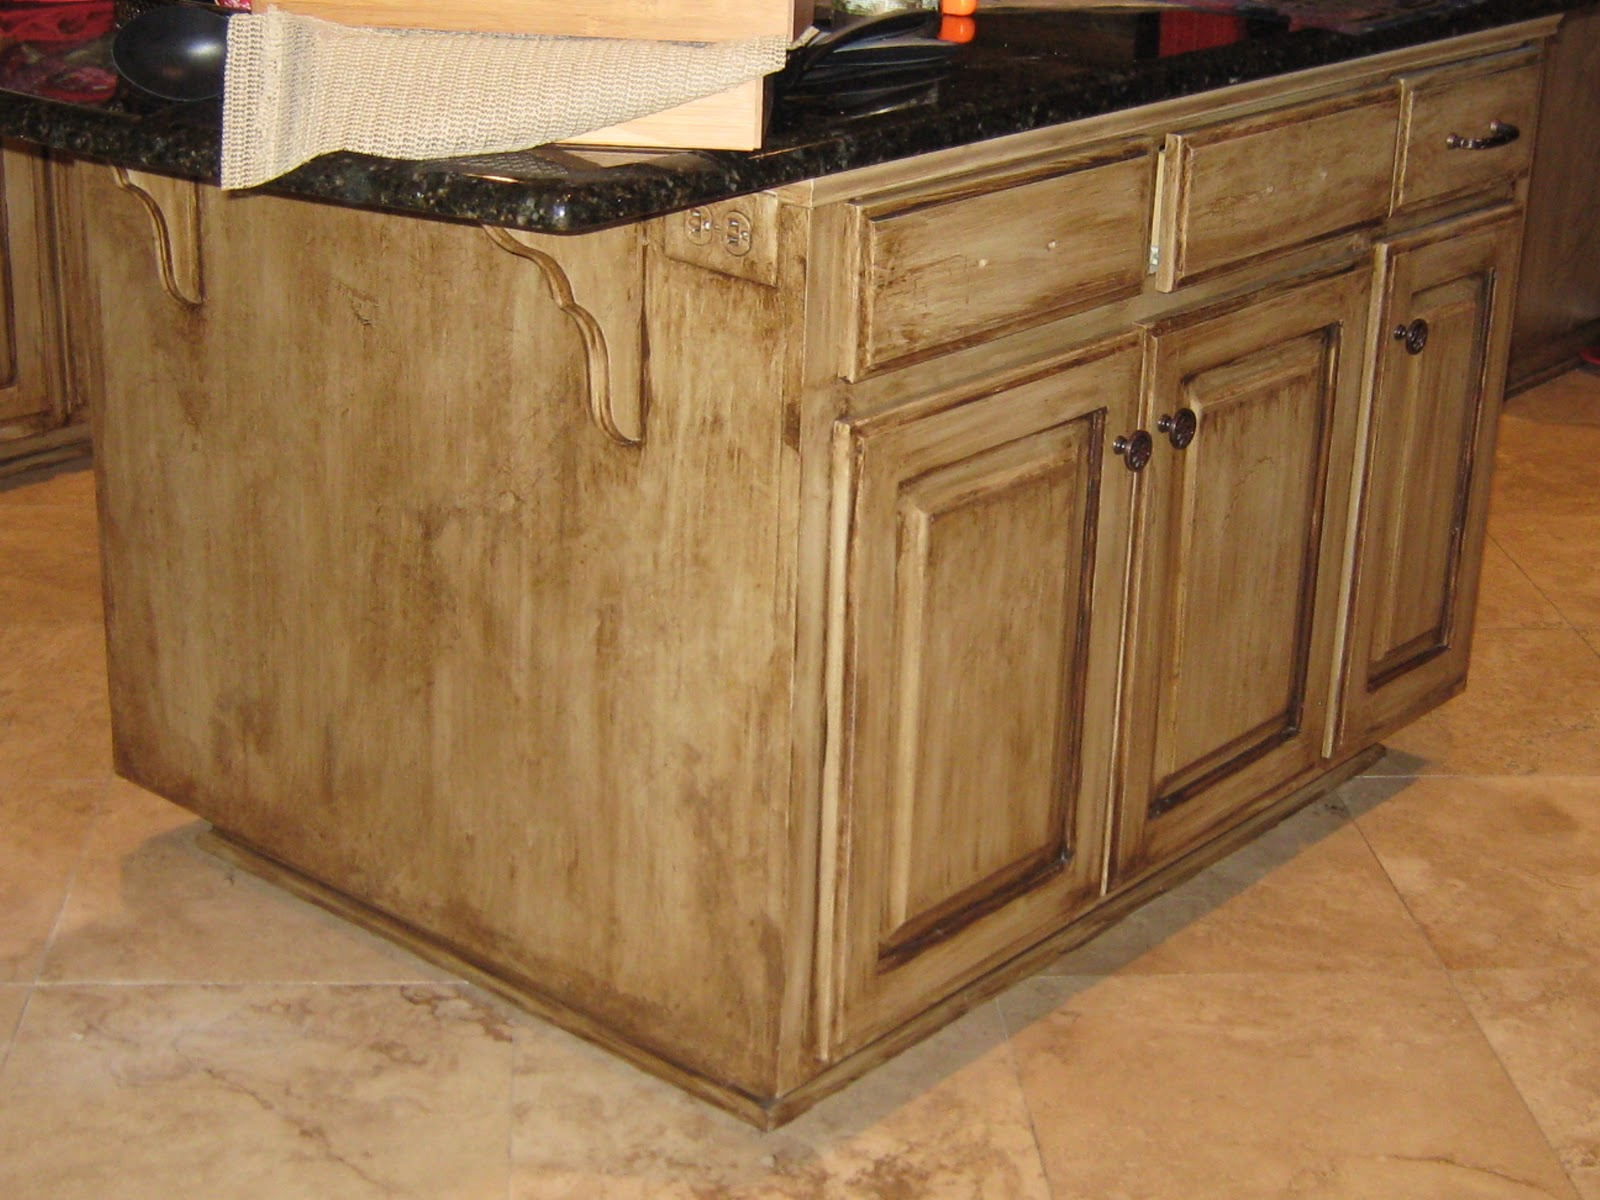 Painted Kitchen Islands Average Cost For Cabinets Lynda Bergman Decorative Artisan Re Painting Susan 39s